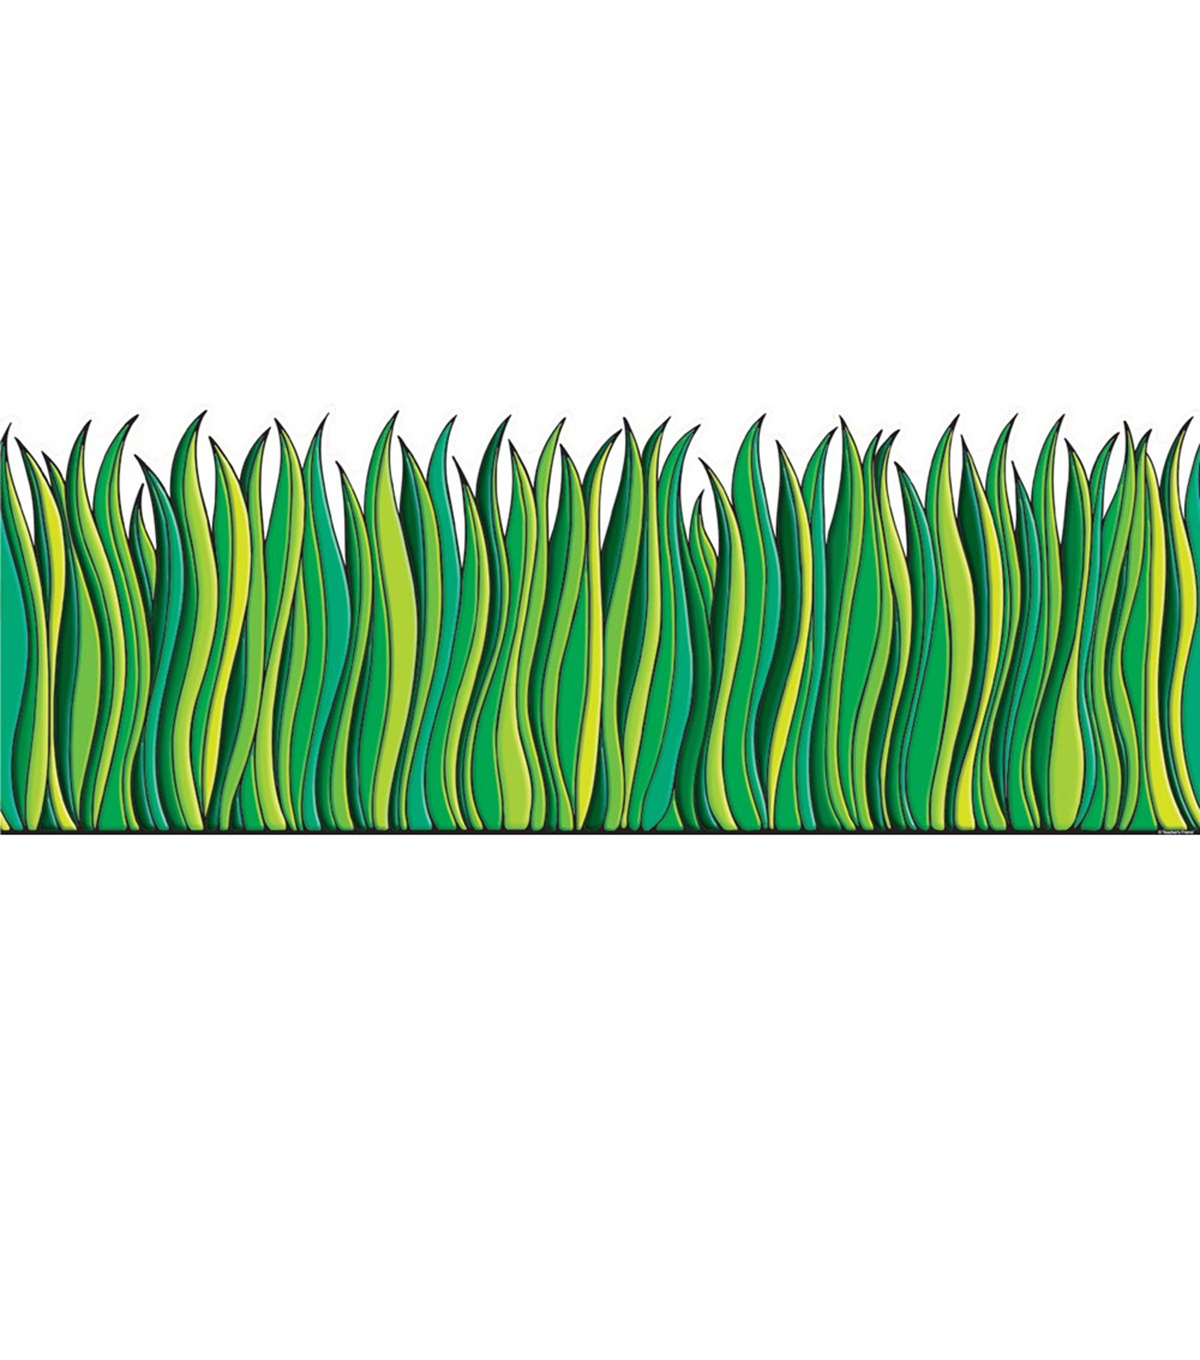 Tall Green Grass Accent Punch Outs 6/pk, Set Of 6 Packs